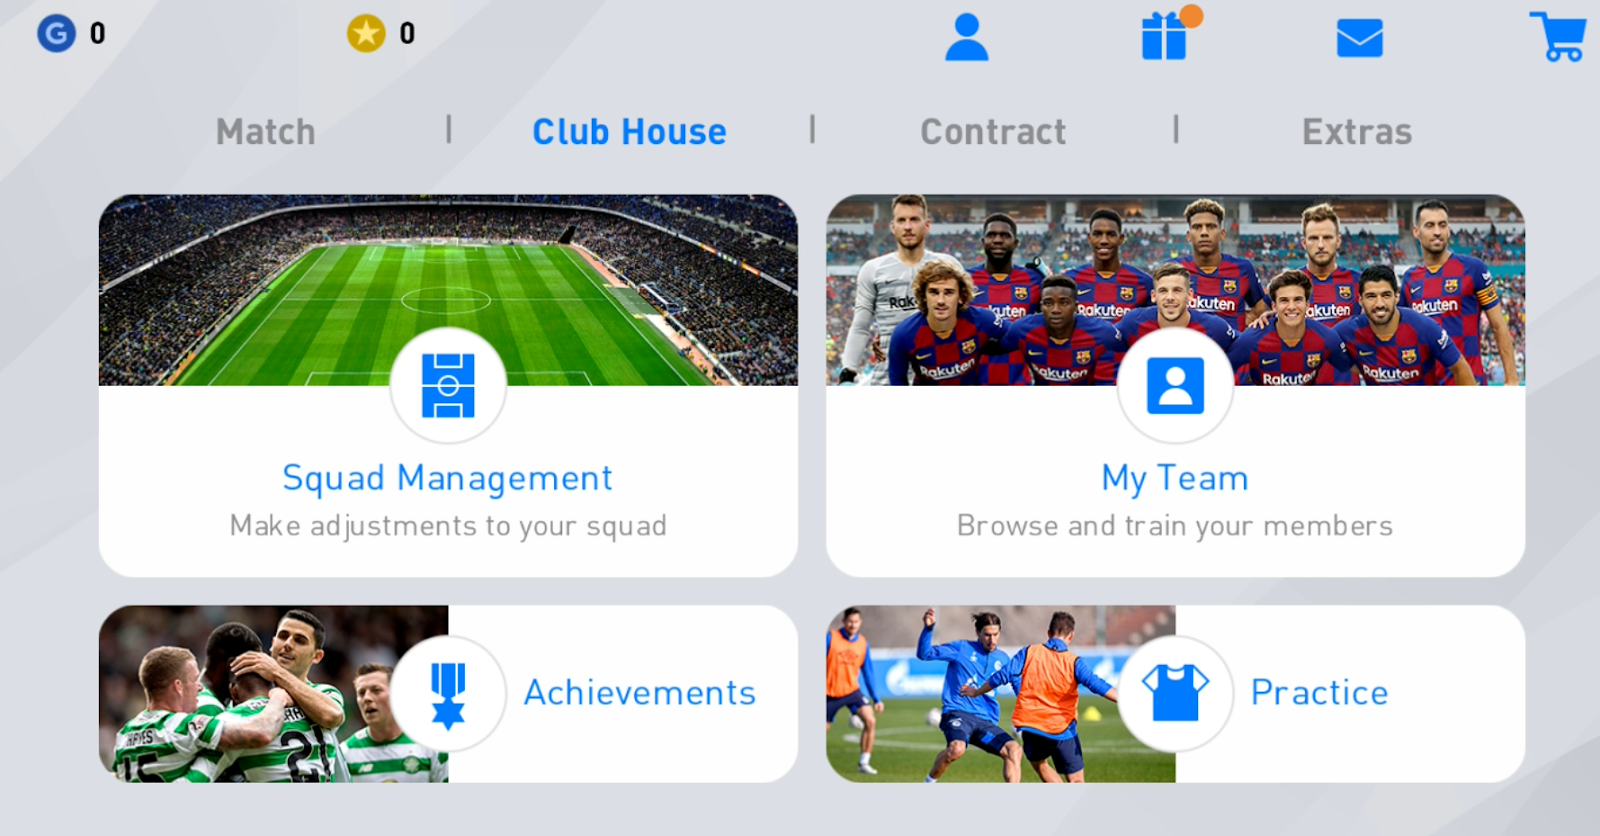 eFootball PES 2020 Mobile V4.6.1 Android Offline New Patch Transfers Update + New Kits Best Graphics